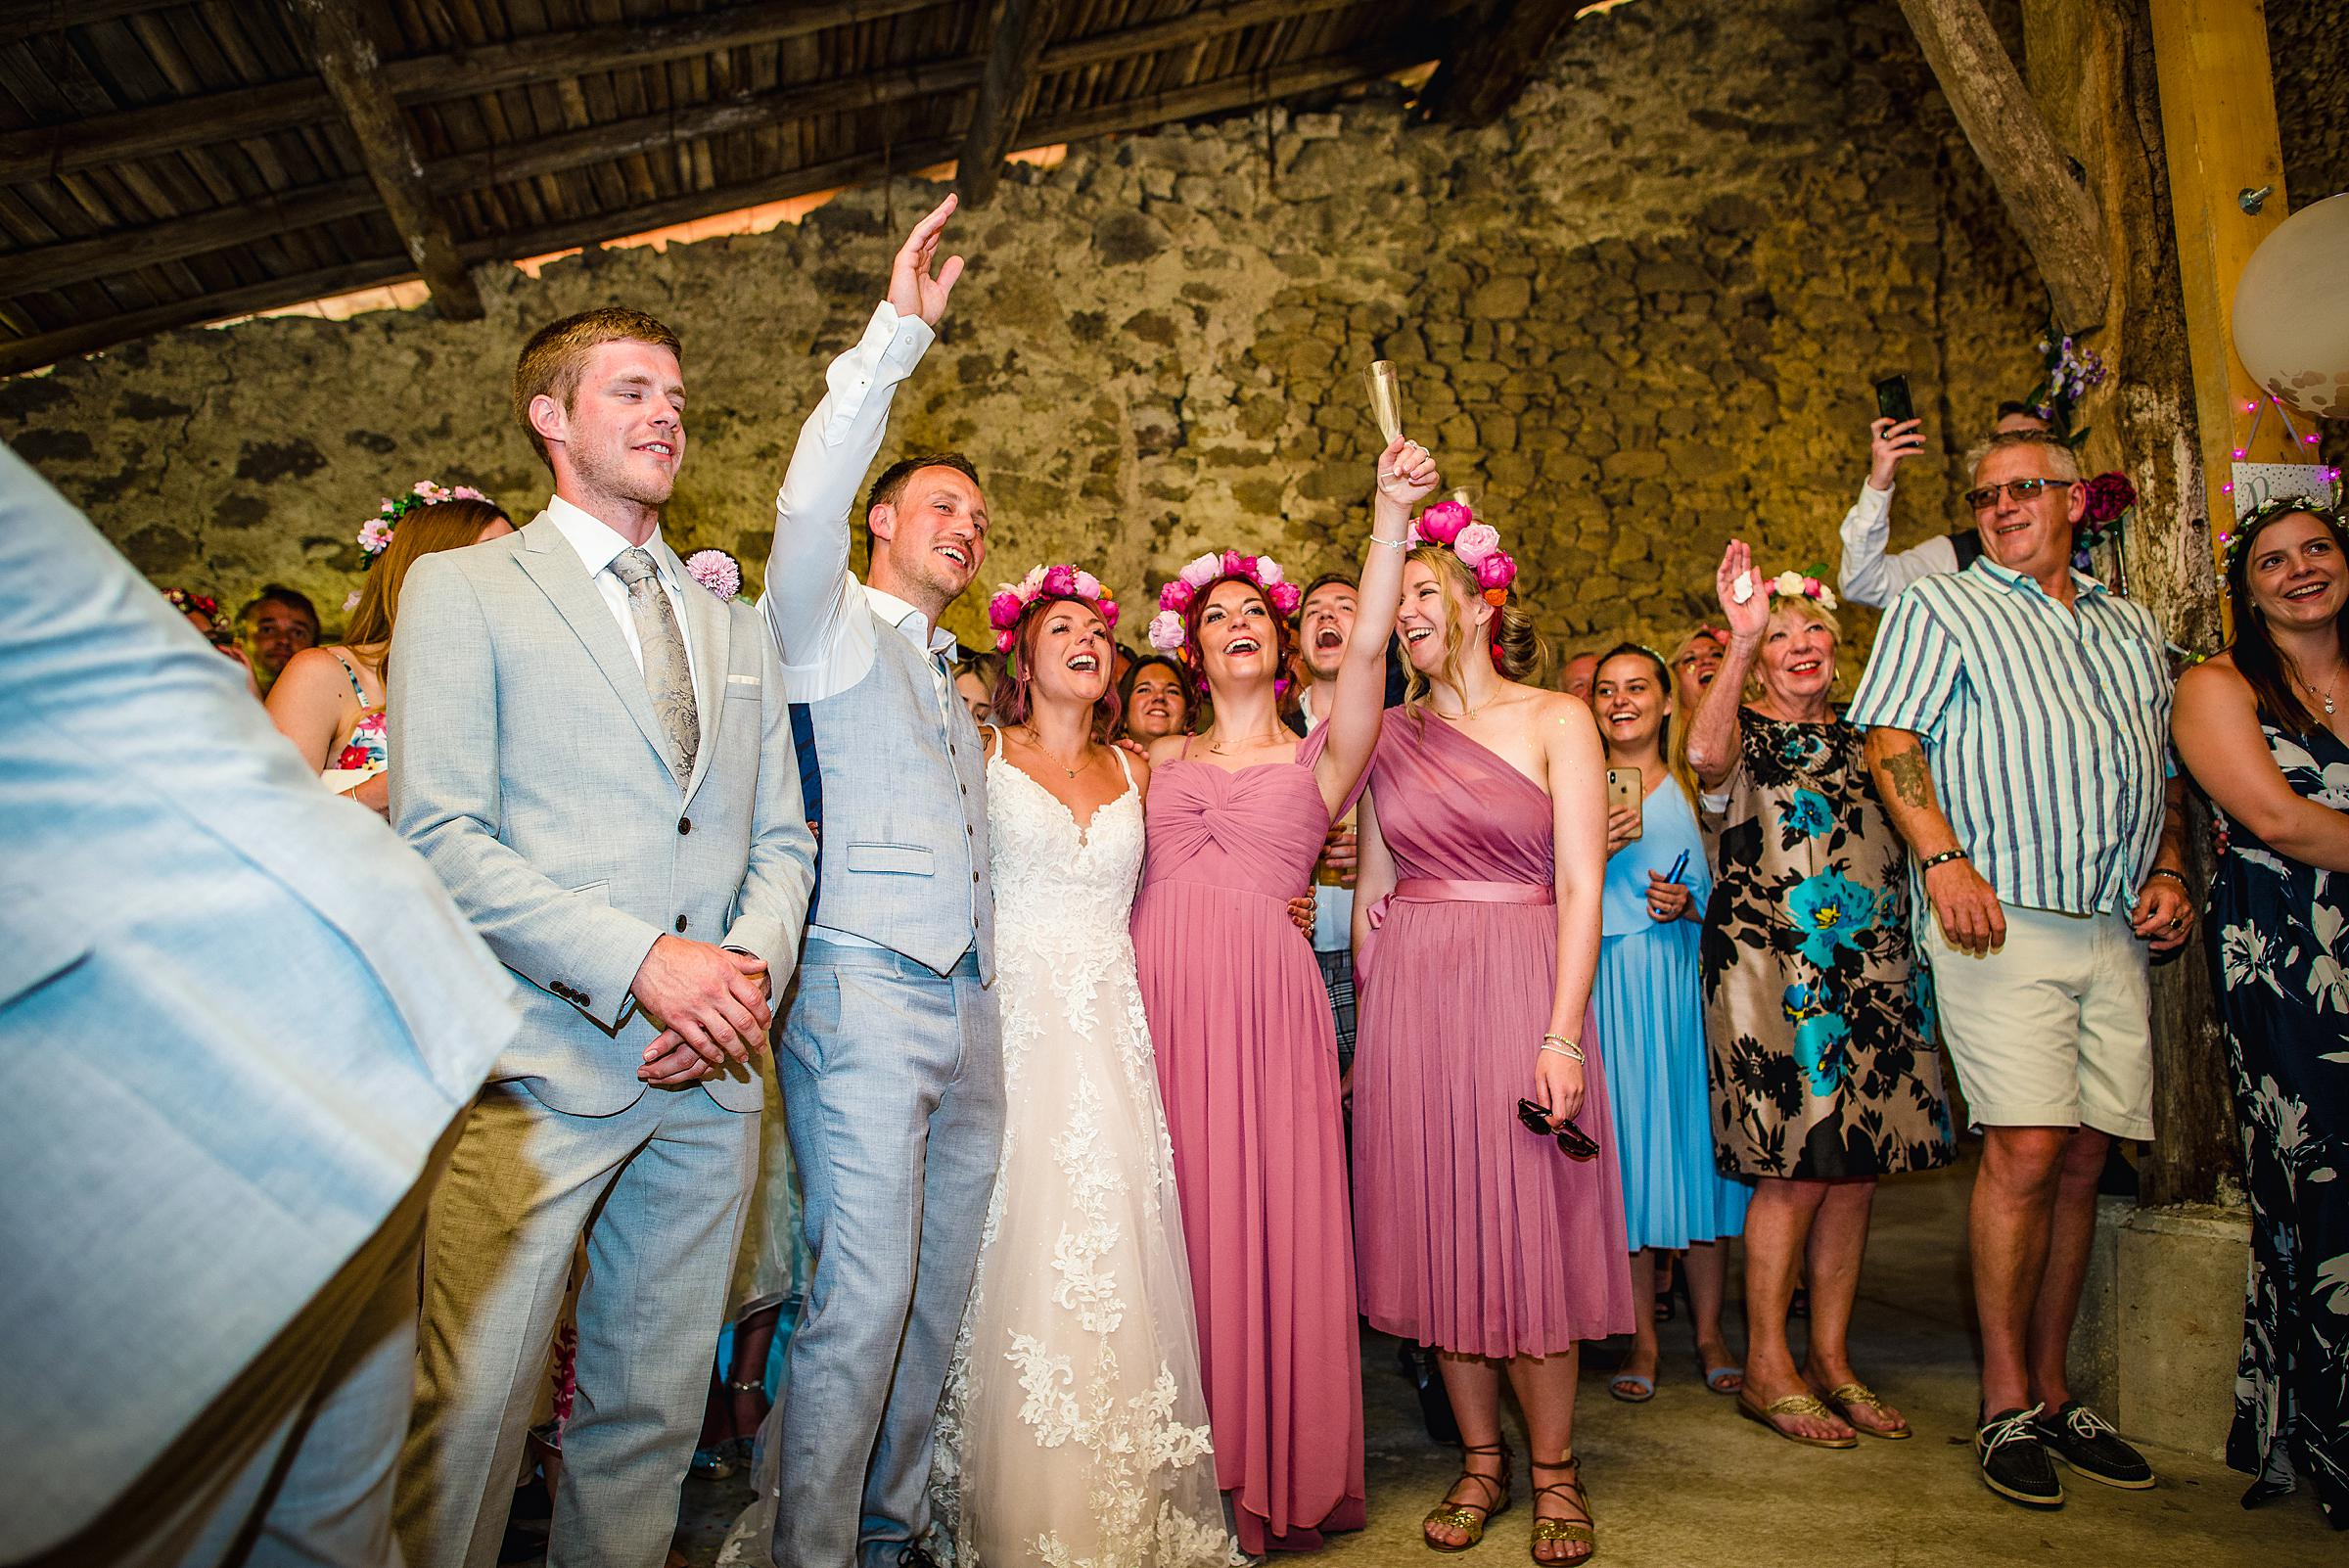 Back Garden Festival Wedding in France - Barn Wedding